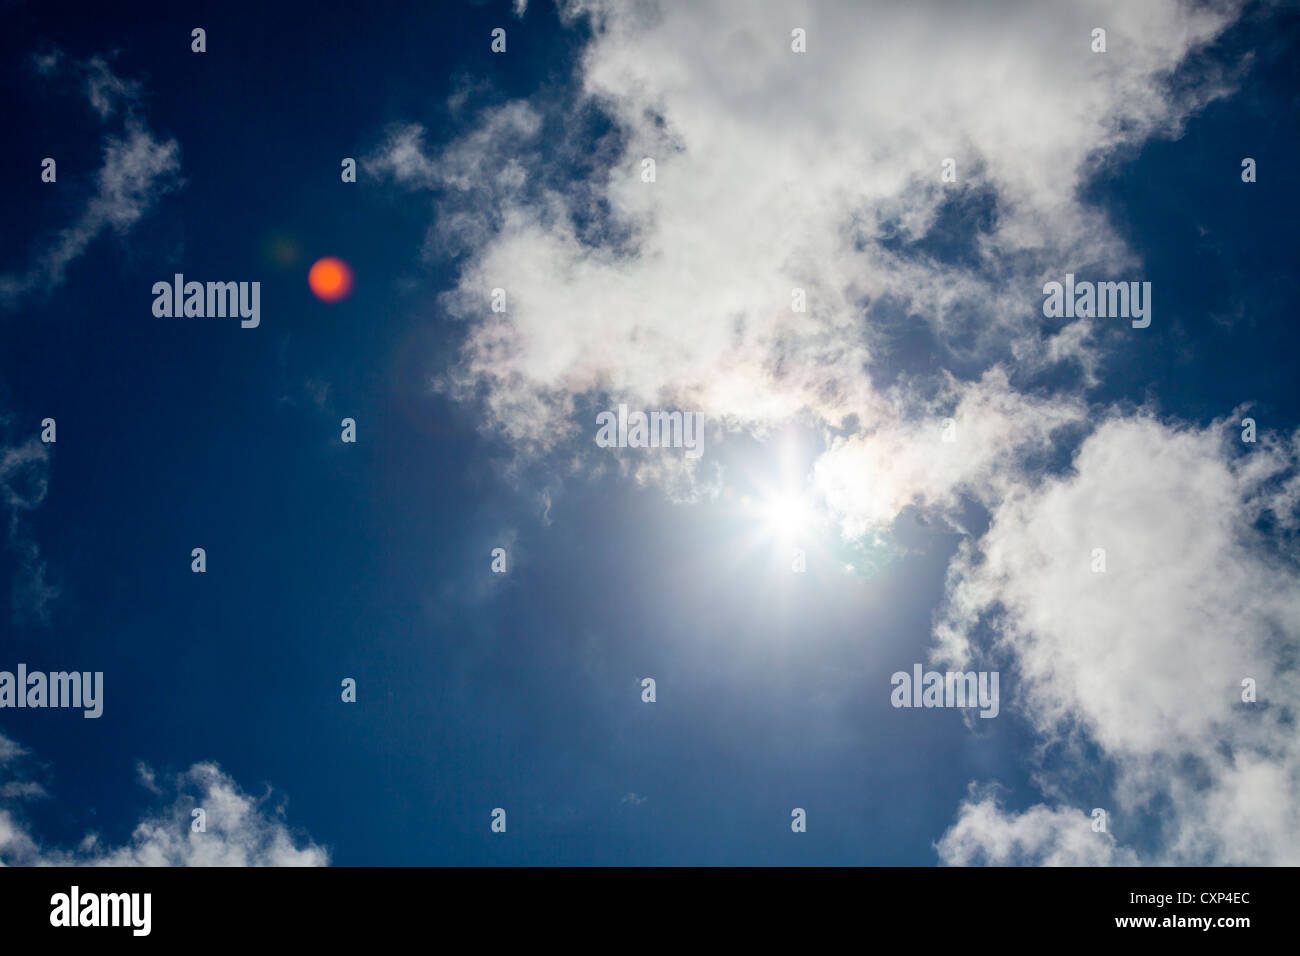 sun and light wispy cloud with blue sky with lens flare - Stock Image